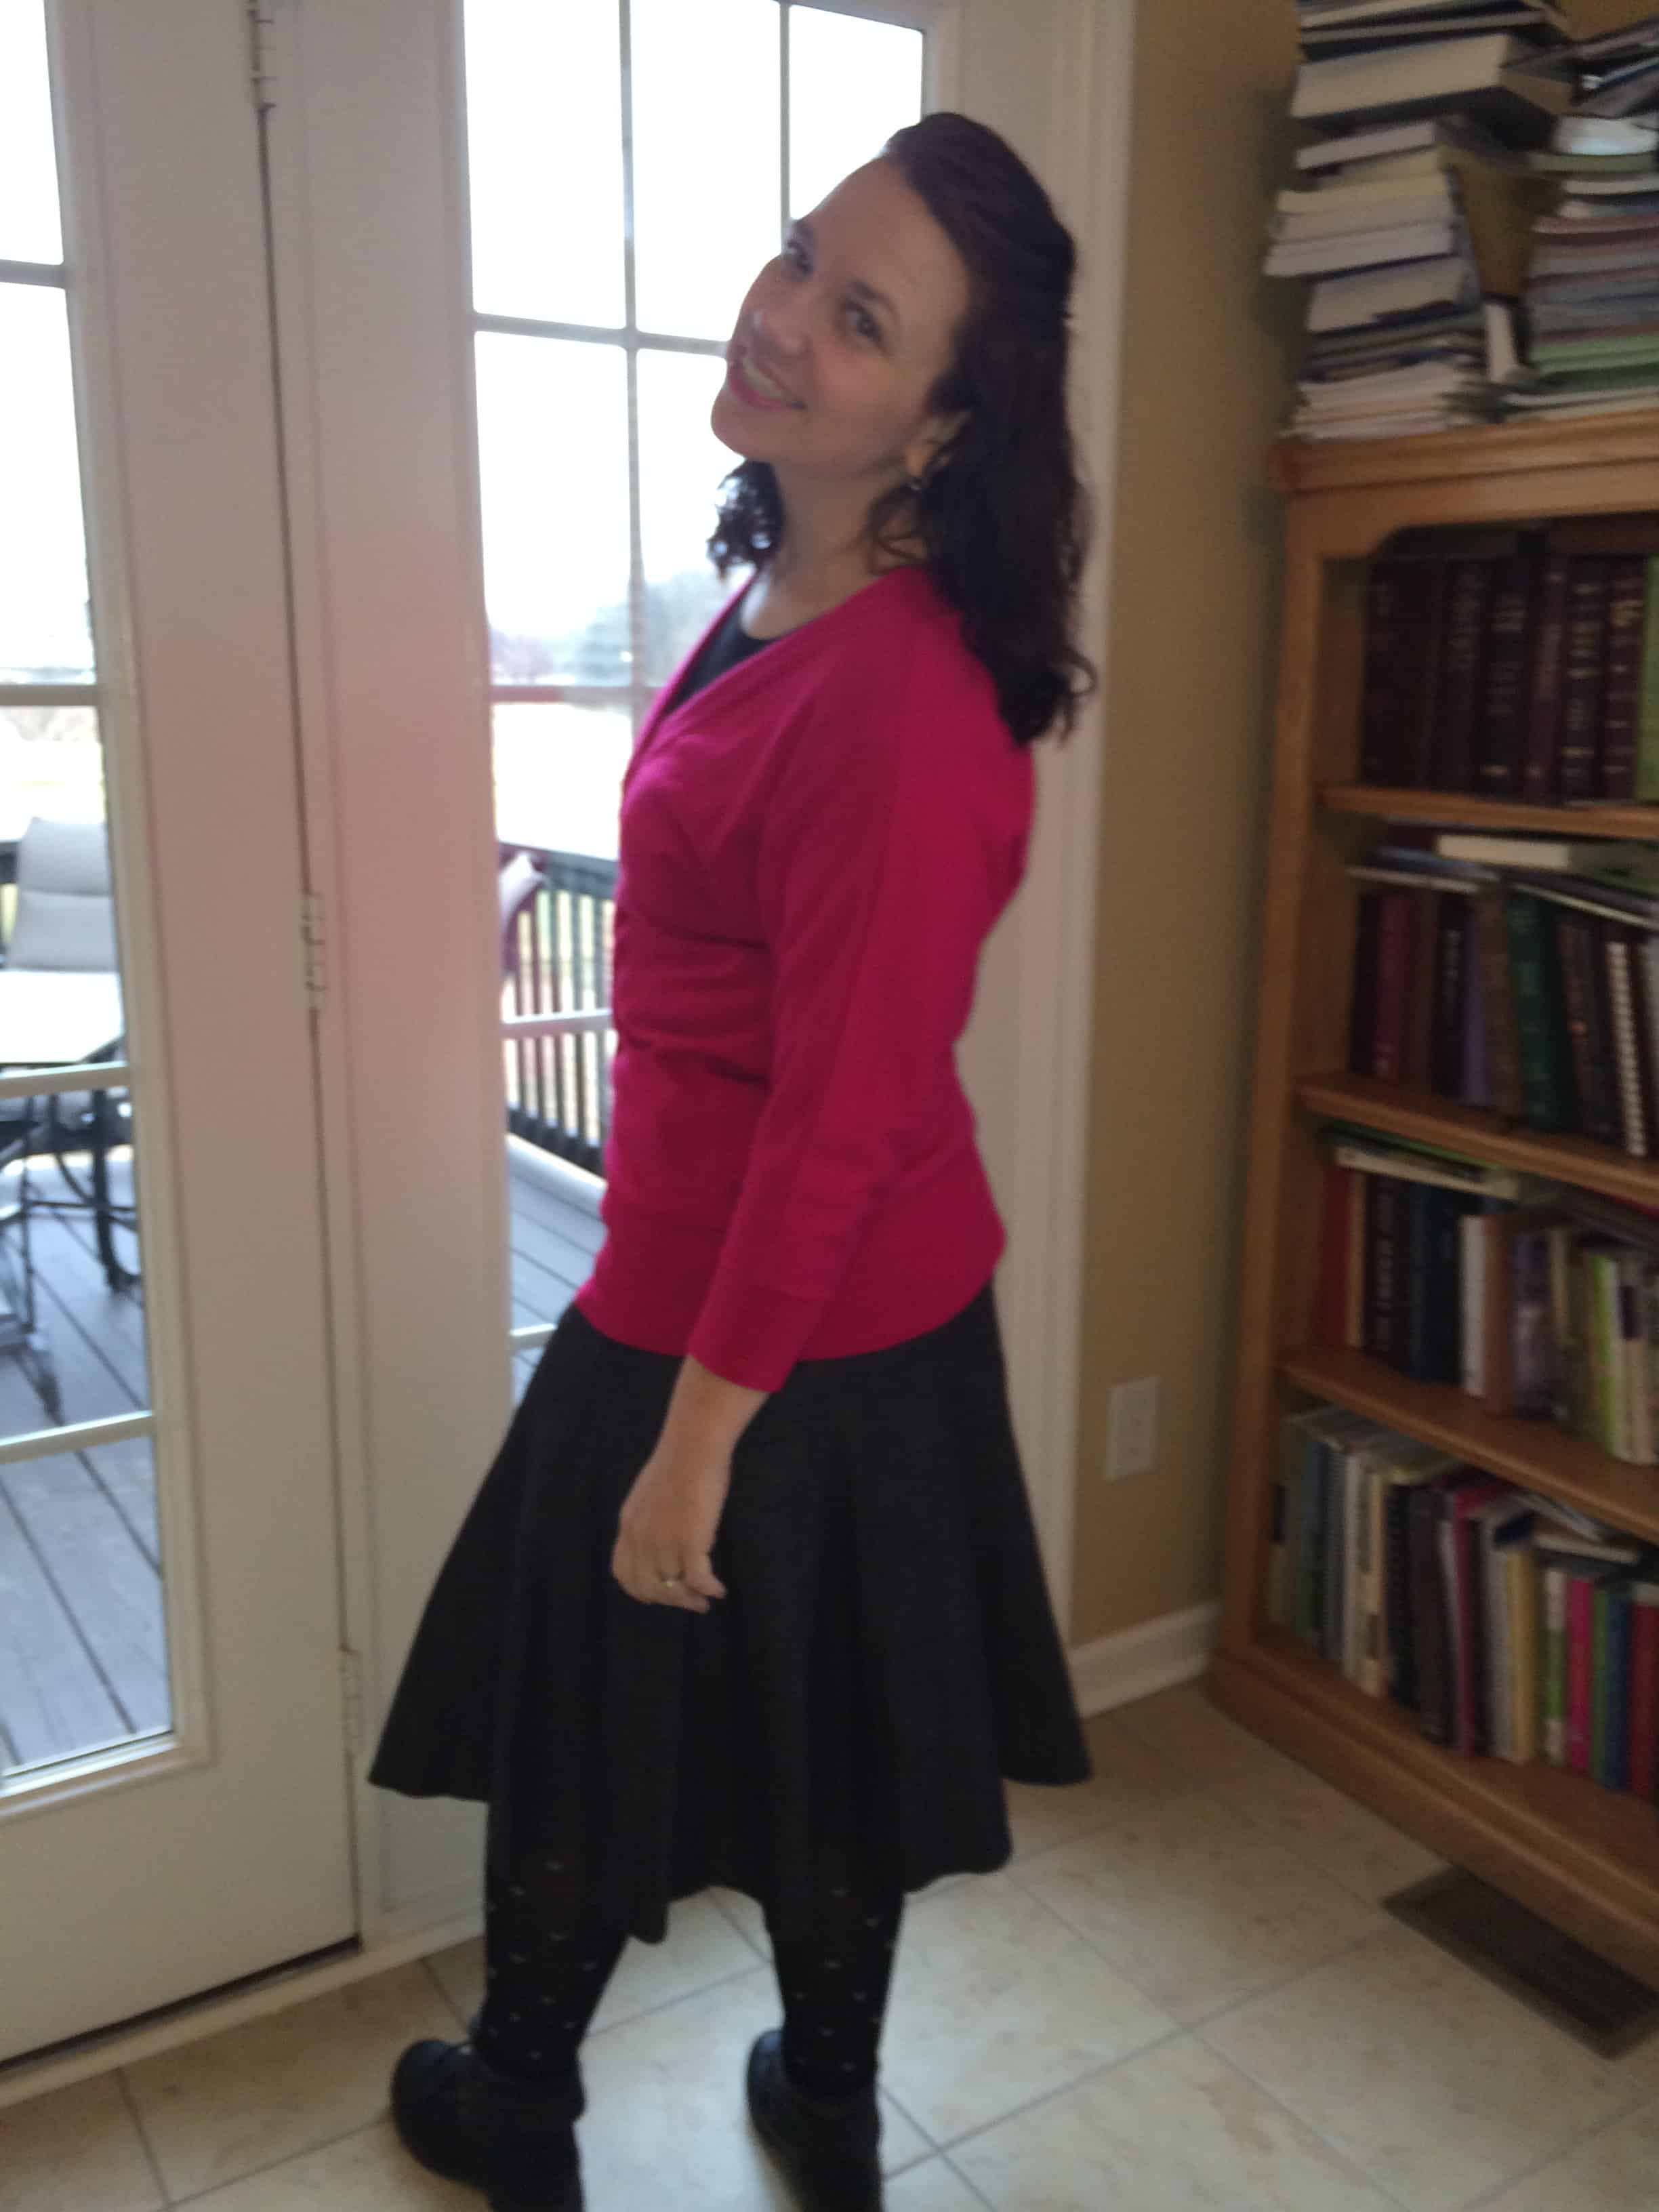 Modest Monday-Valenetine's Day with a Military Spouse.